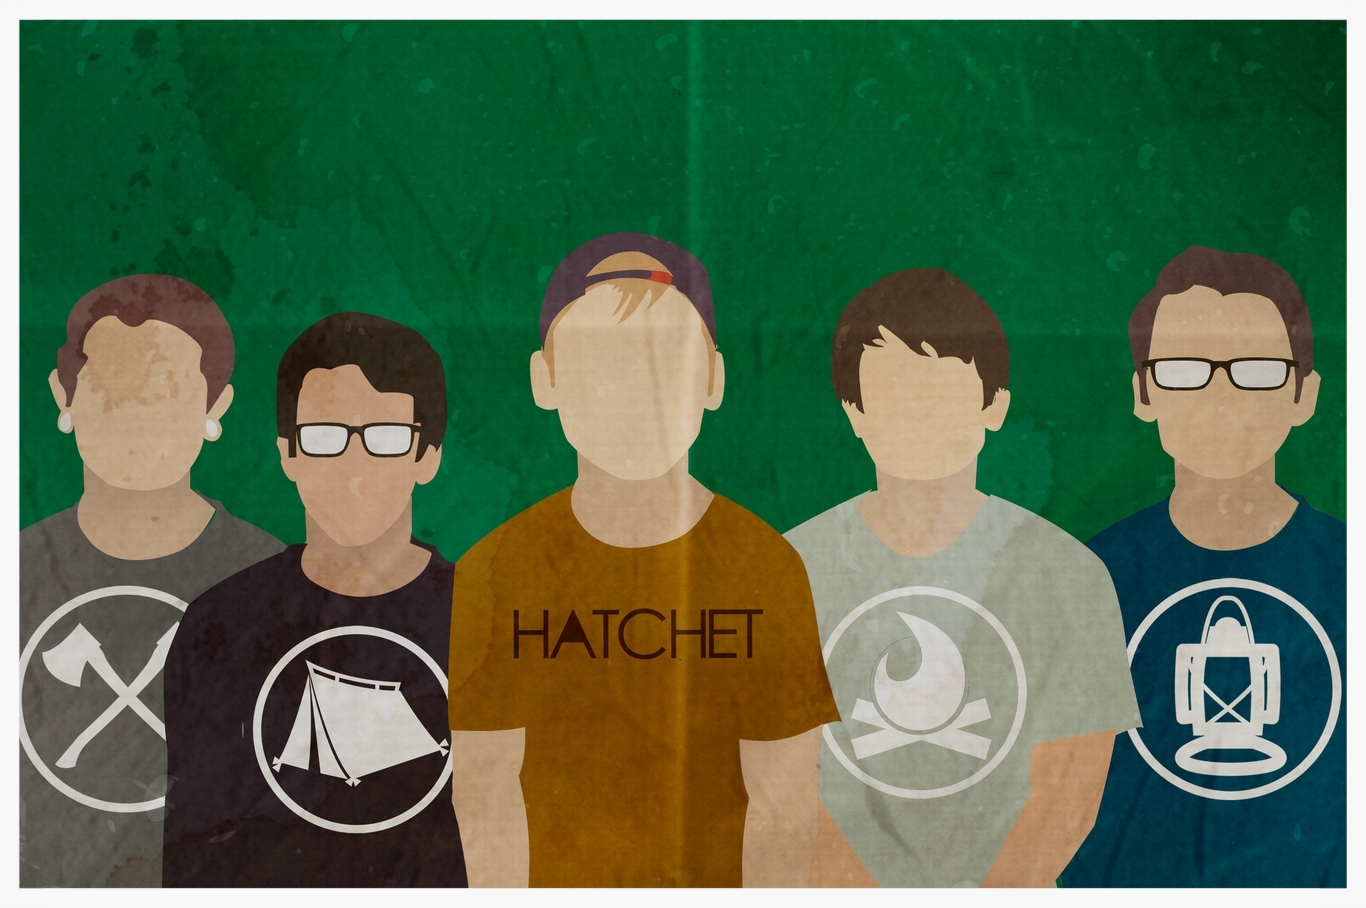 14. Feb. 2015 | hatchet | high hopes_sponser_11x14 poster.jpg